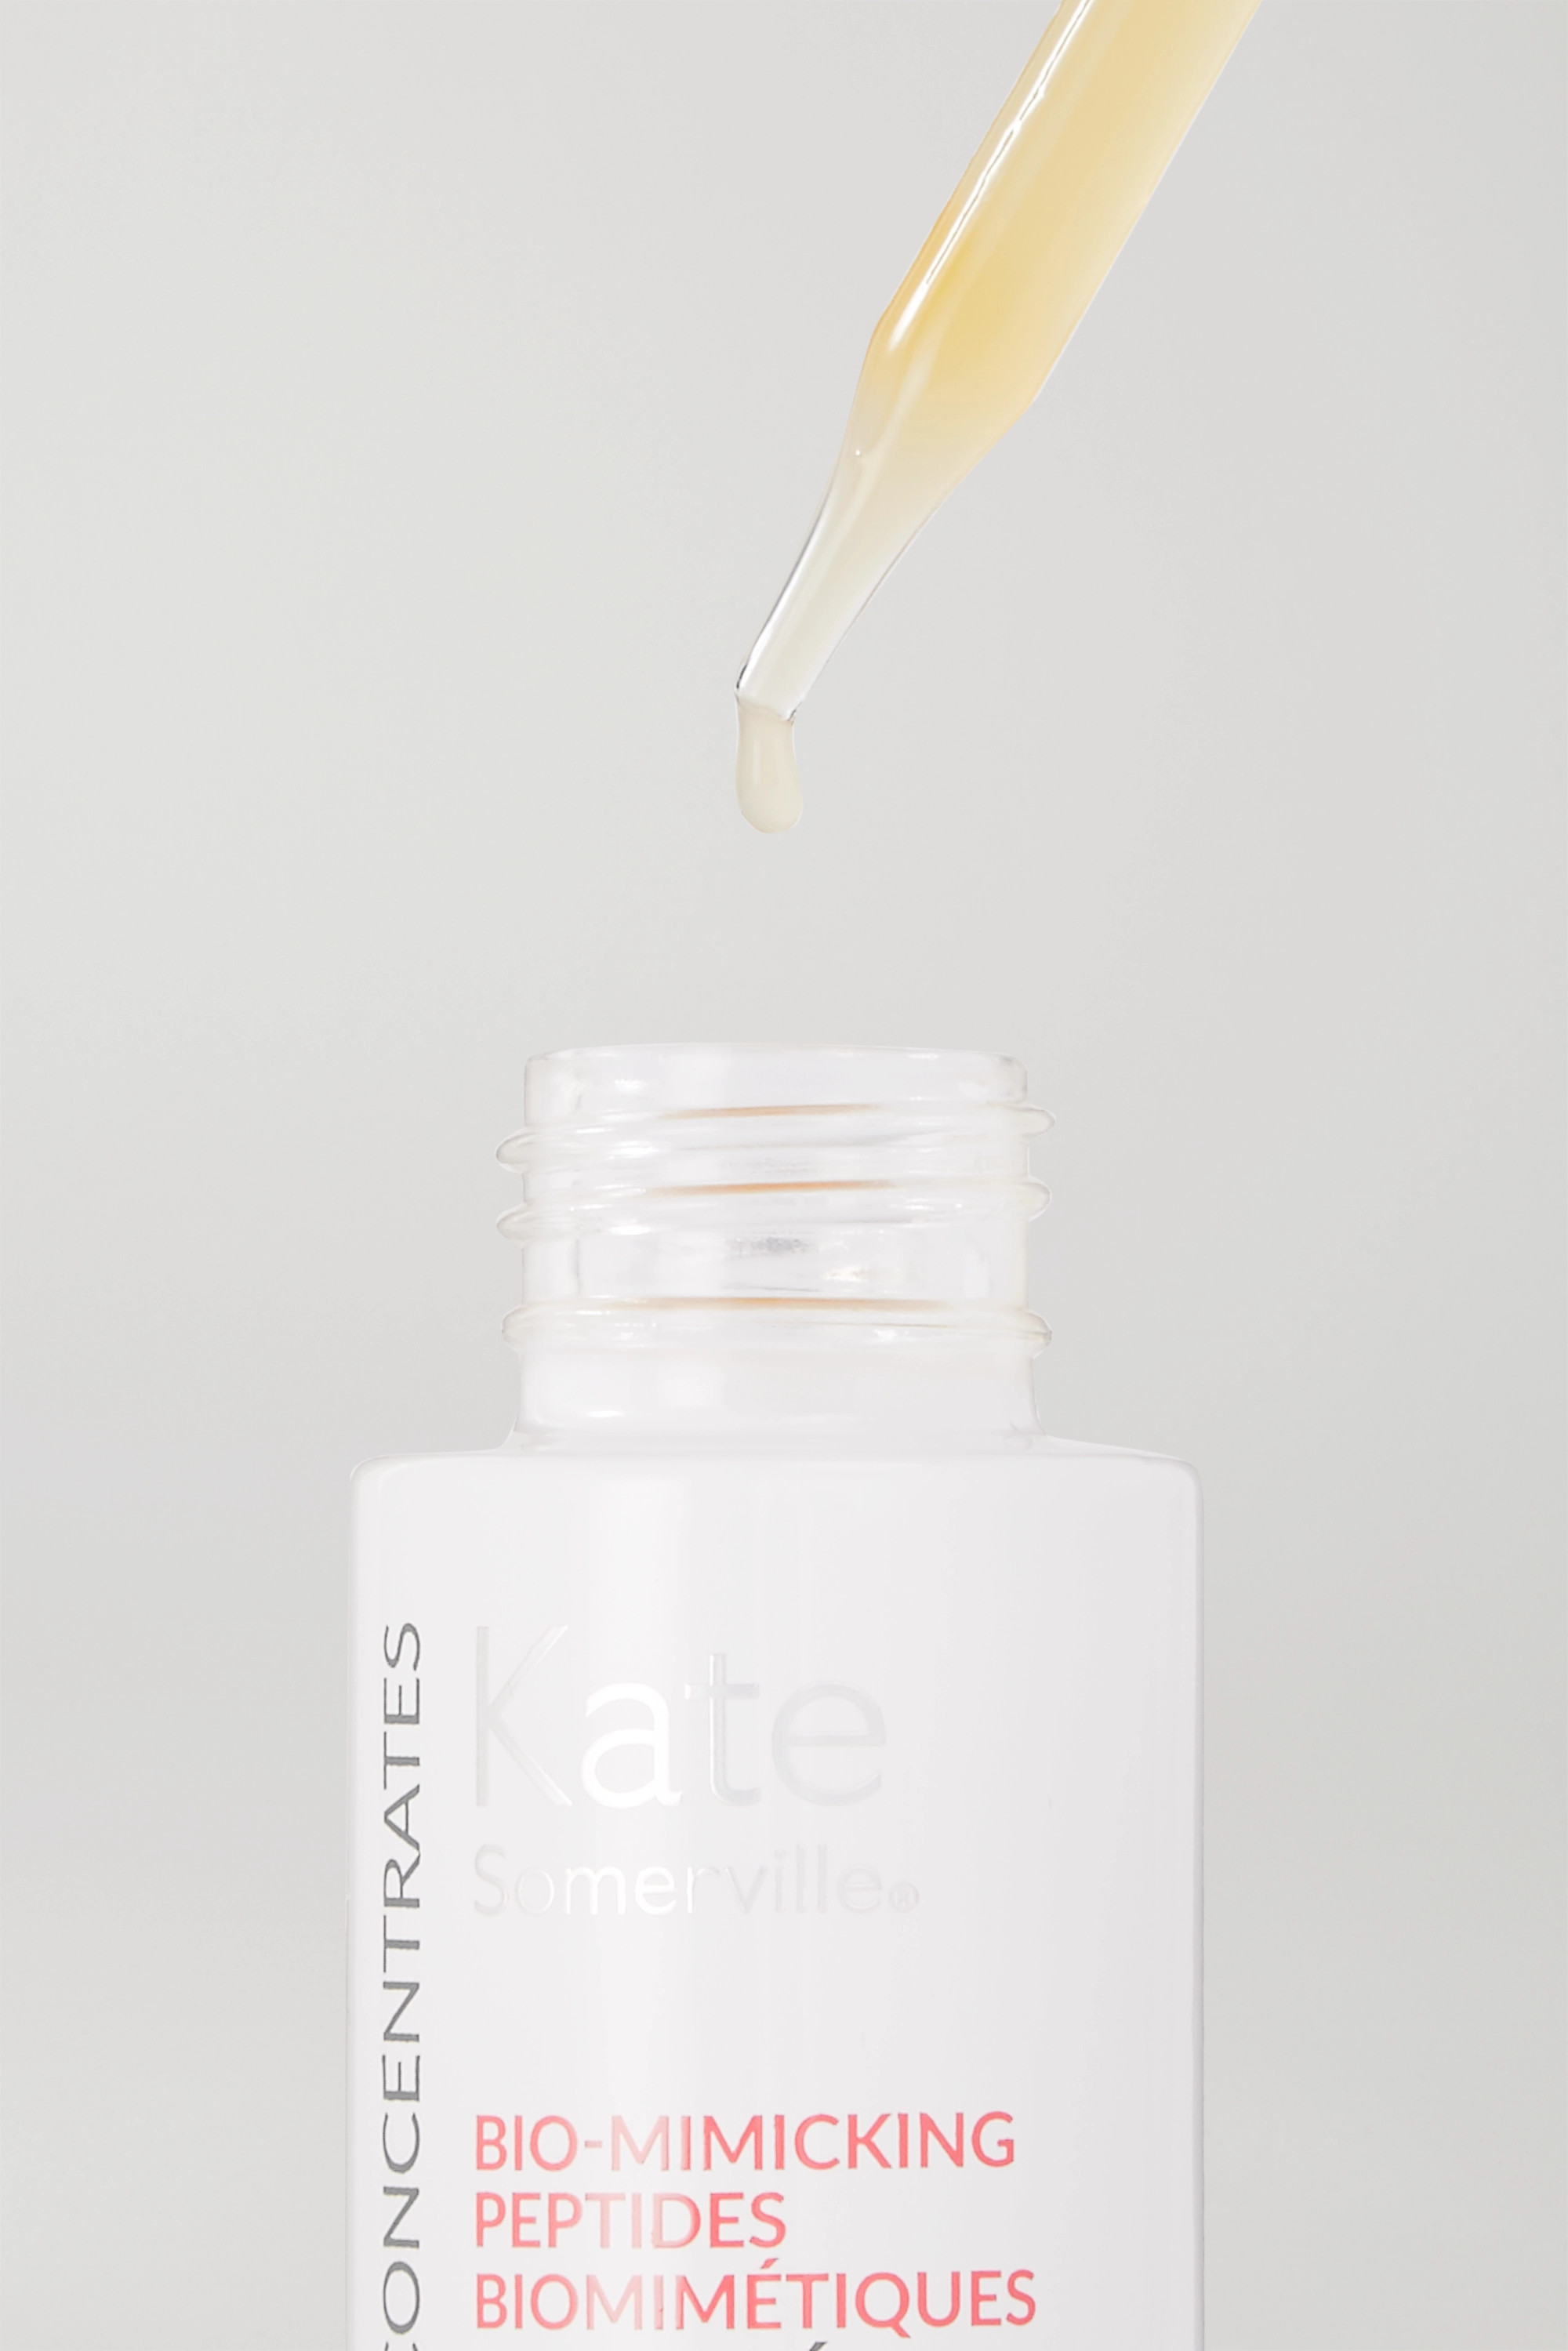 Kate Somerville Kx Active Concentrates Bio-Mimicking Peptides Serum, 30ml